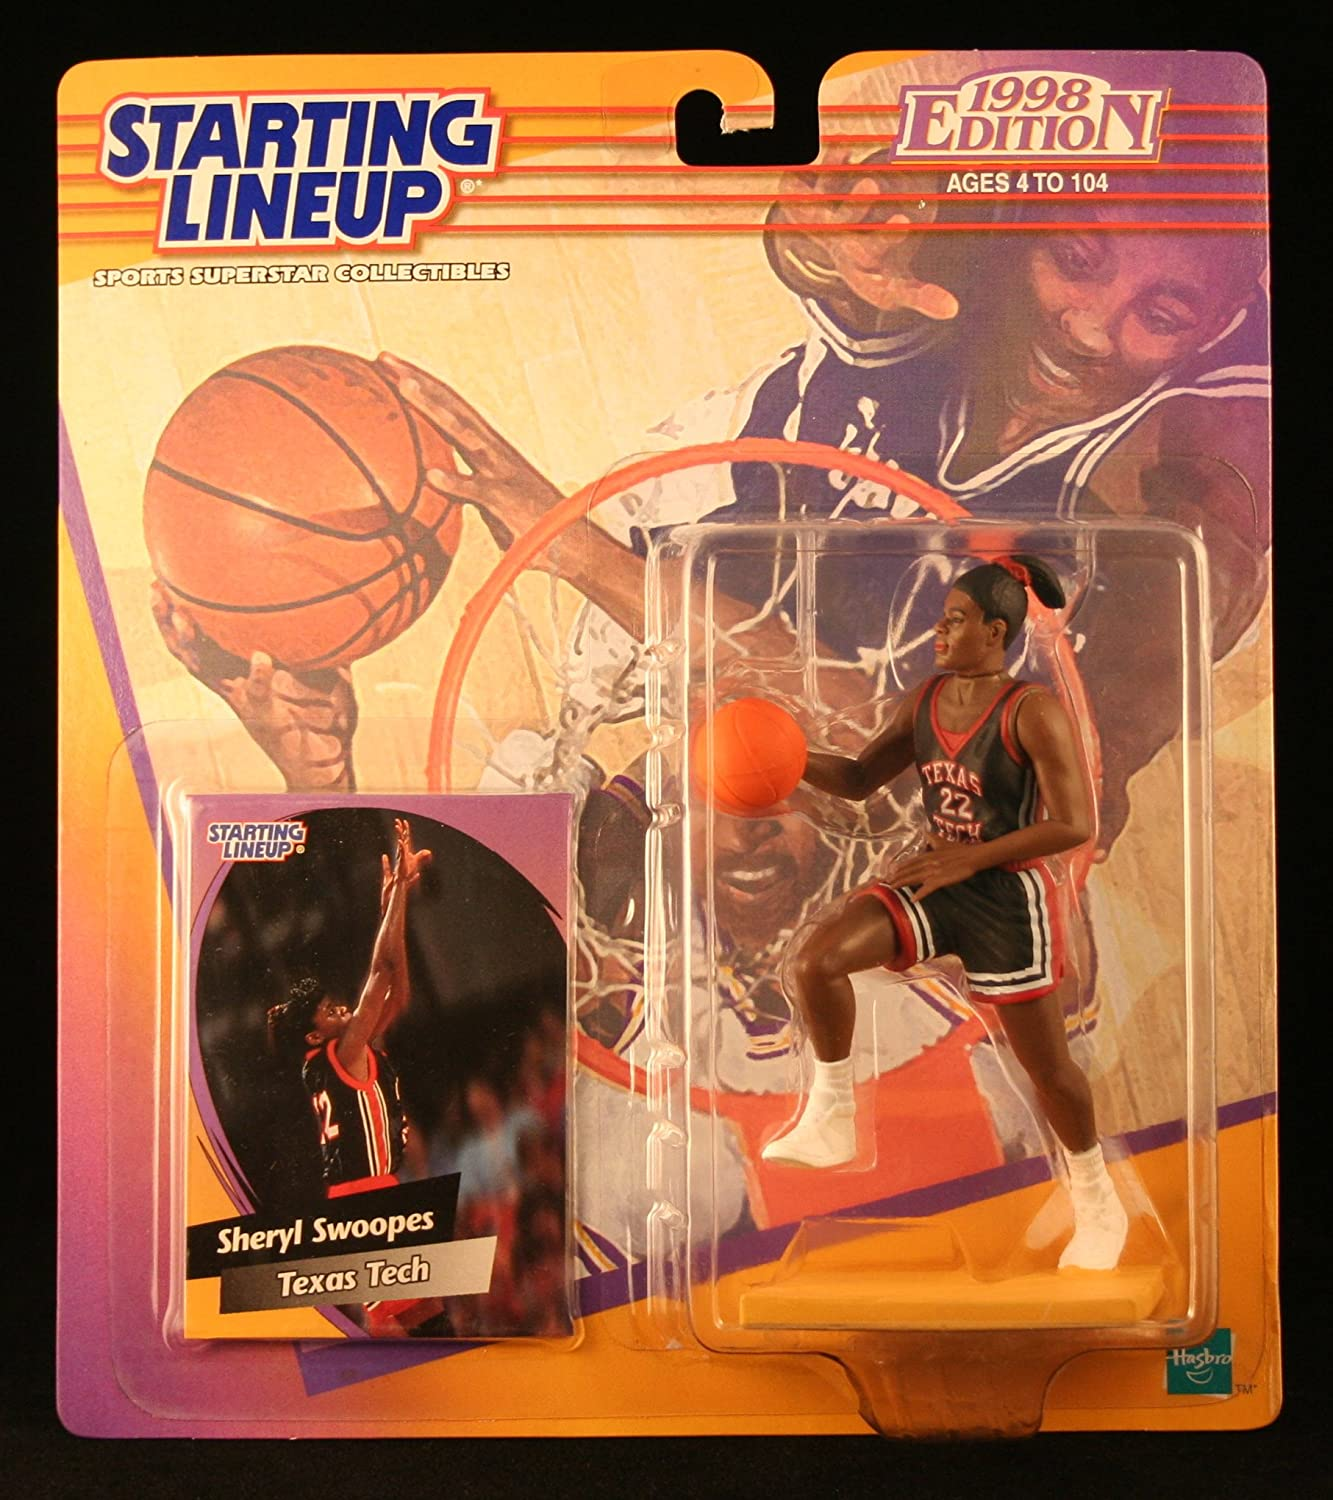 Starting Line Up Sheryl SWOOPES/Texas TECLADY Raiders 1998 Edition ...